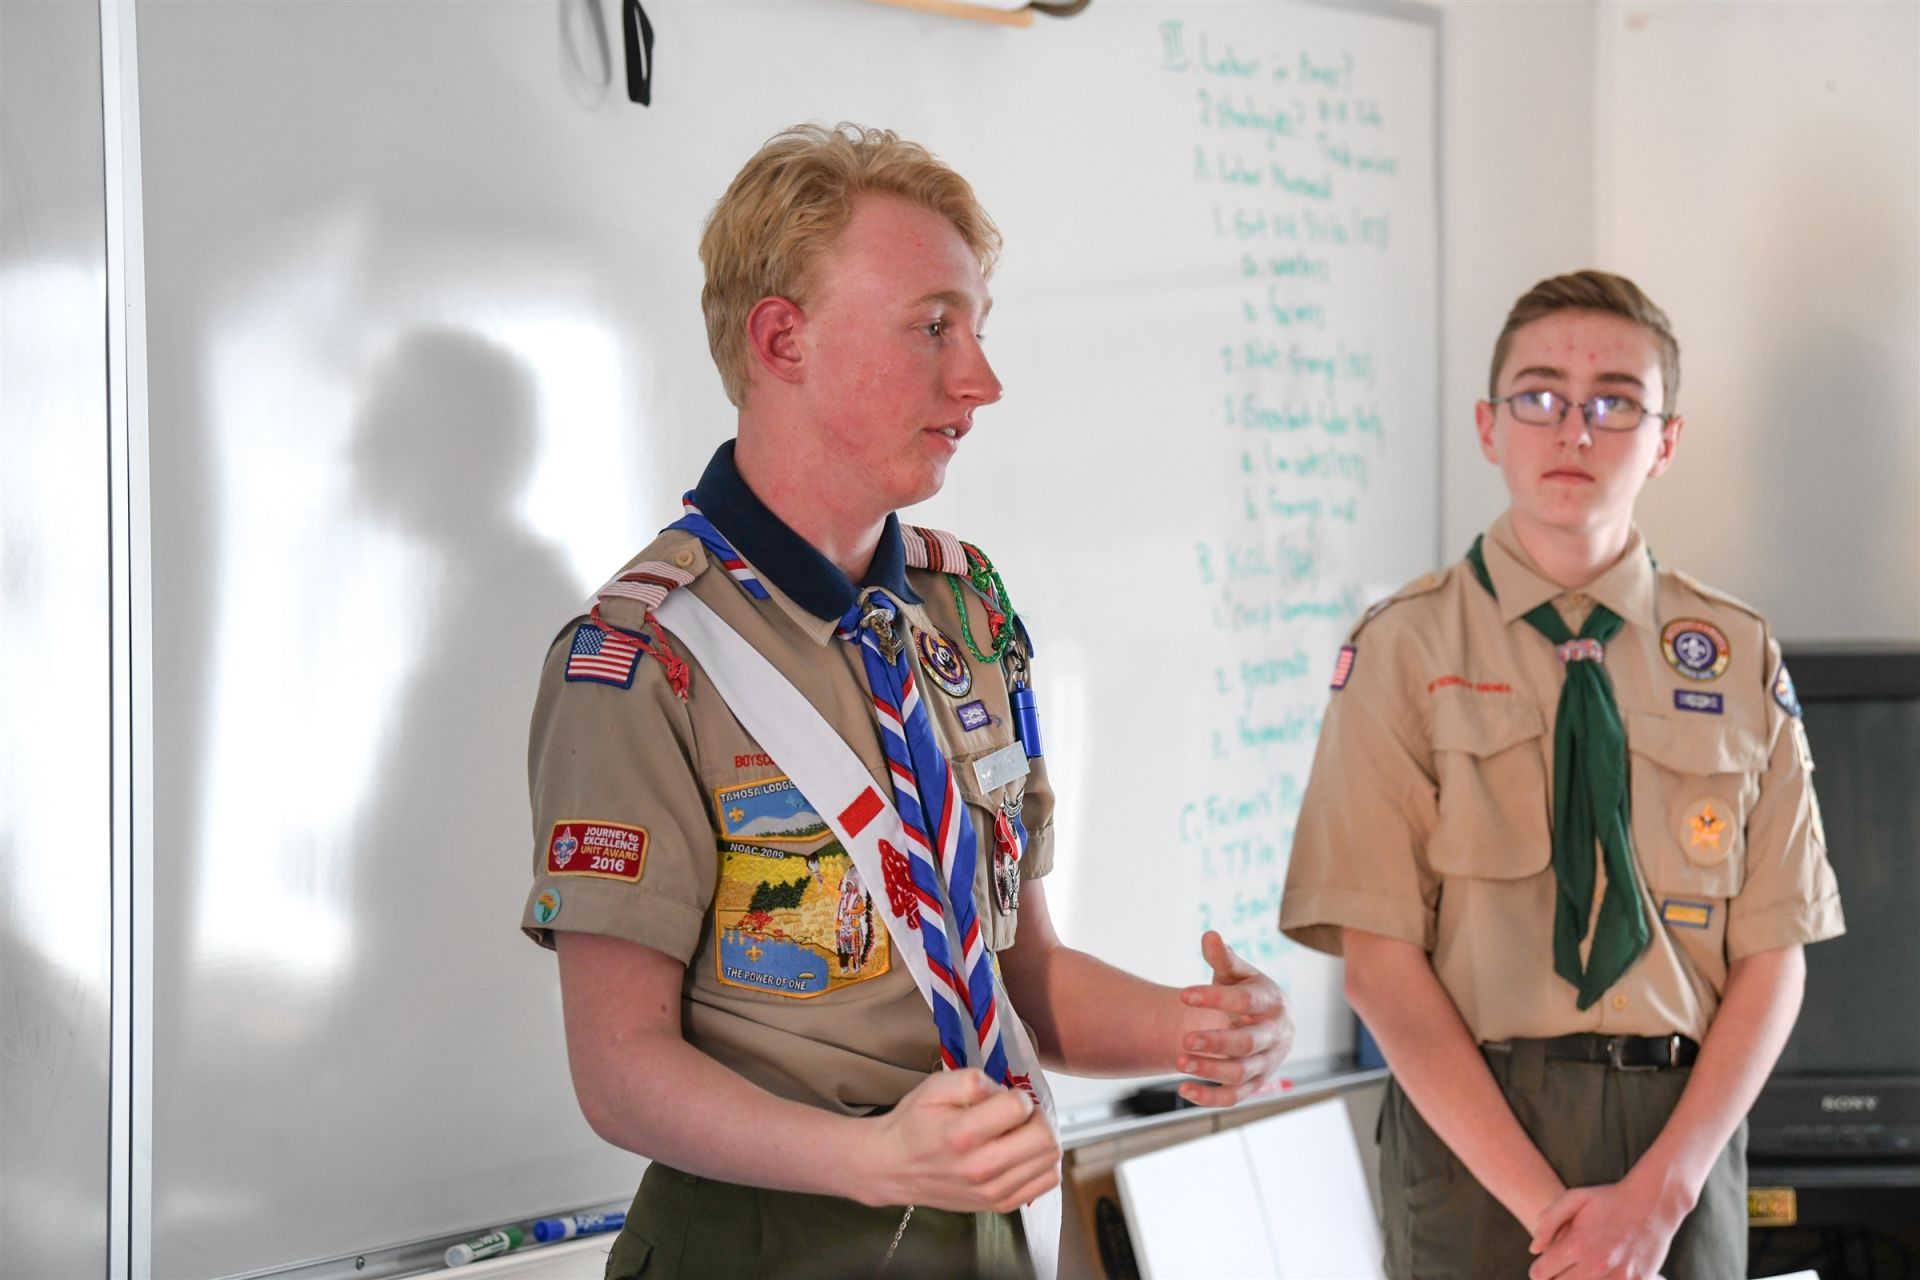 Class: Inclusion in the Boy Scouts of America